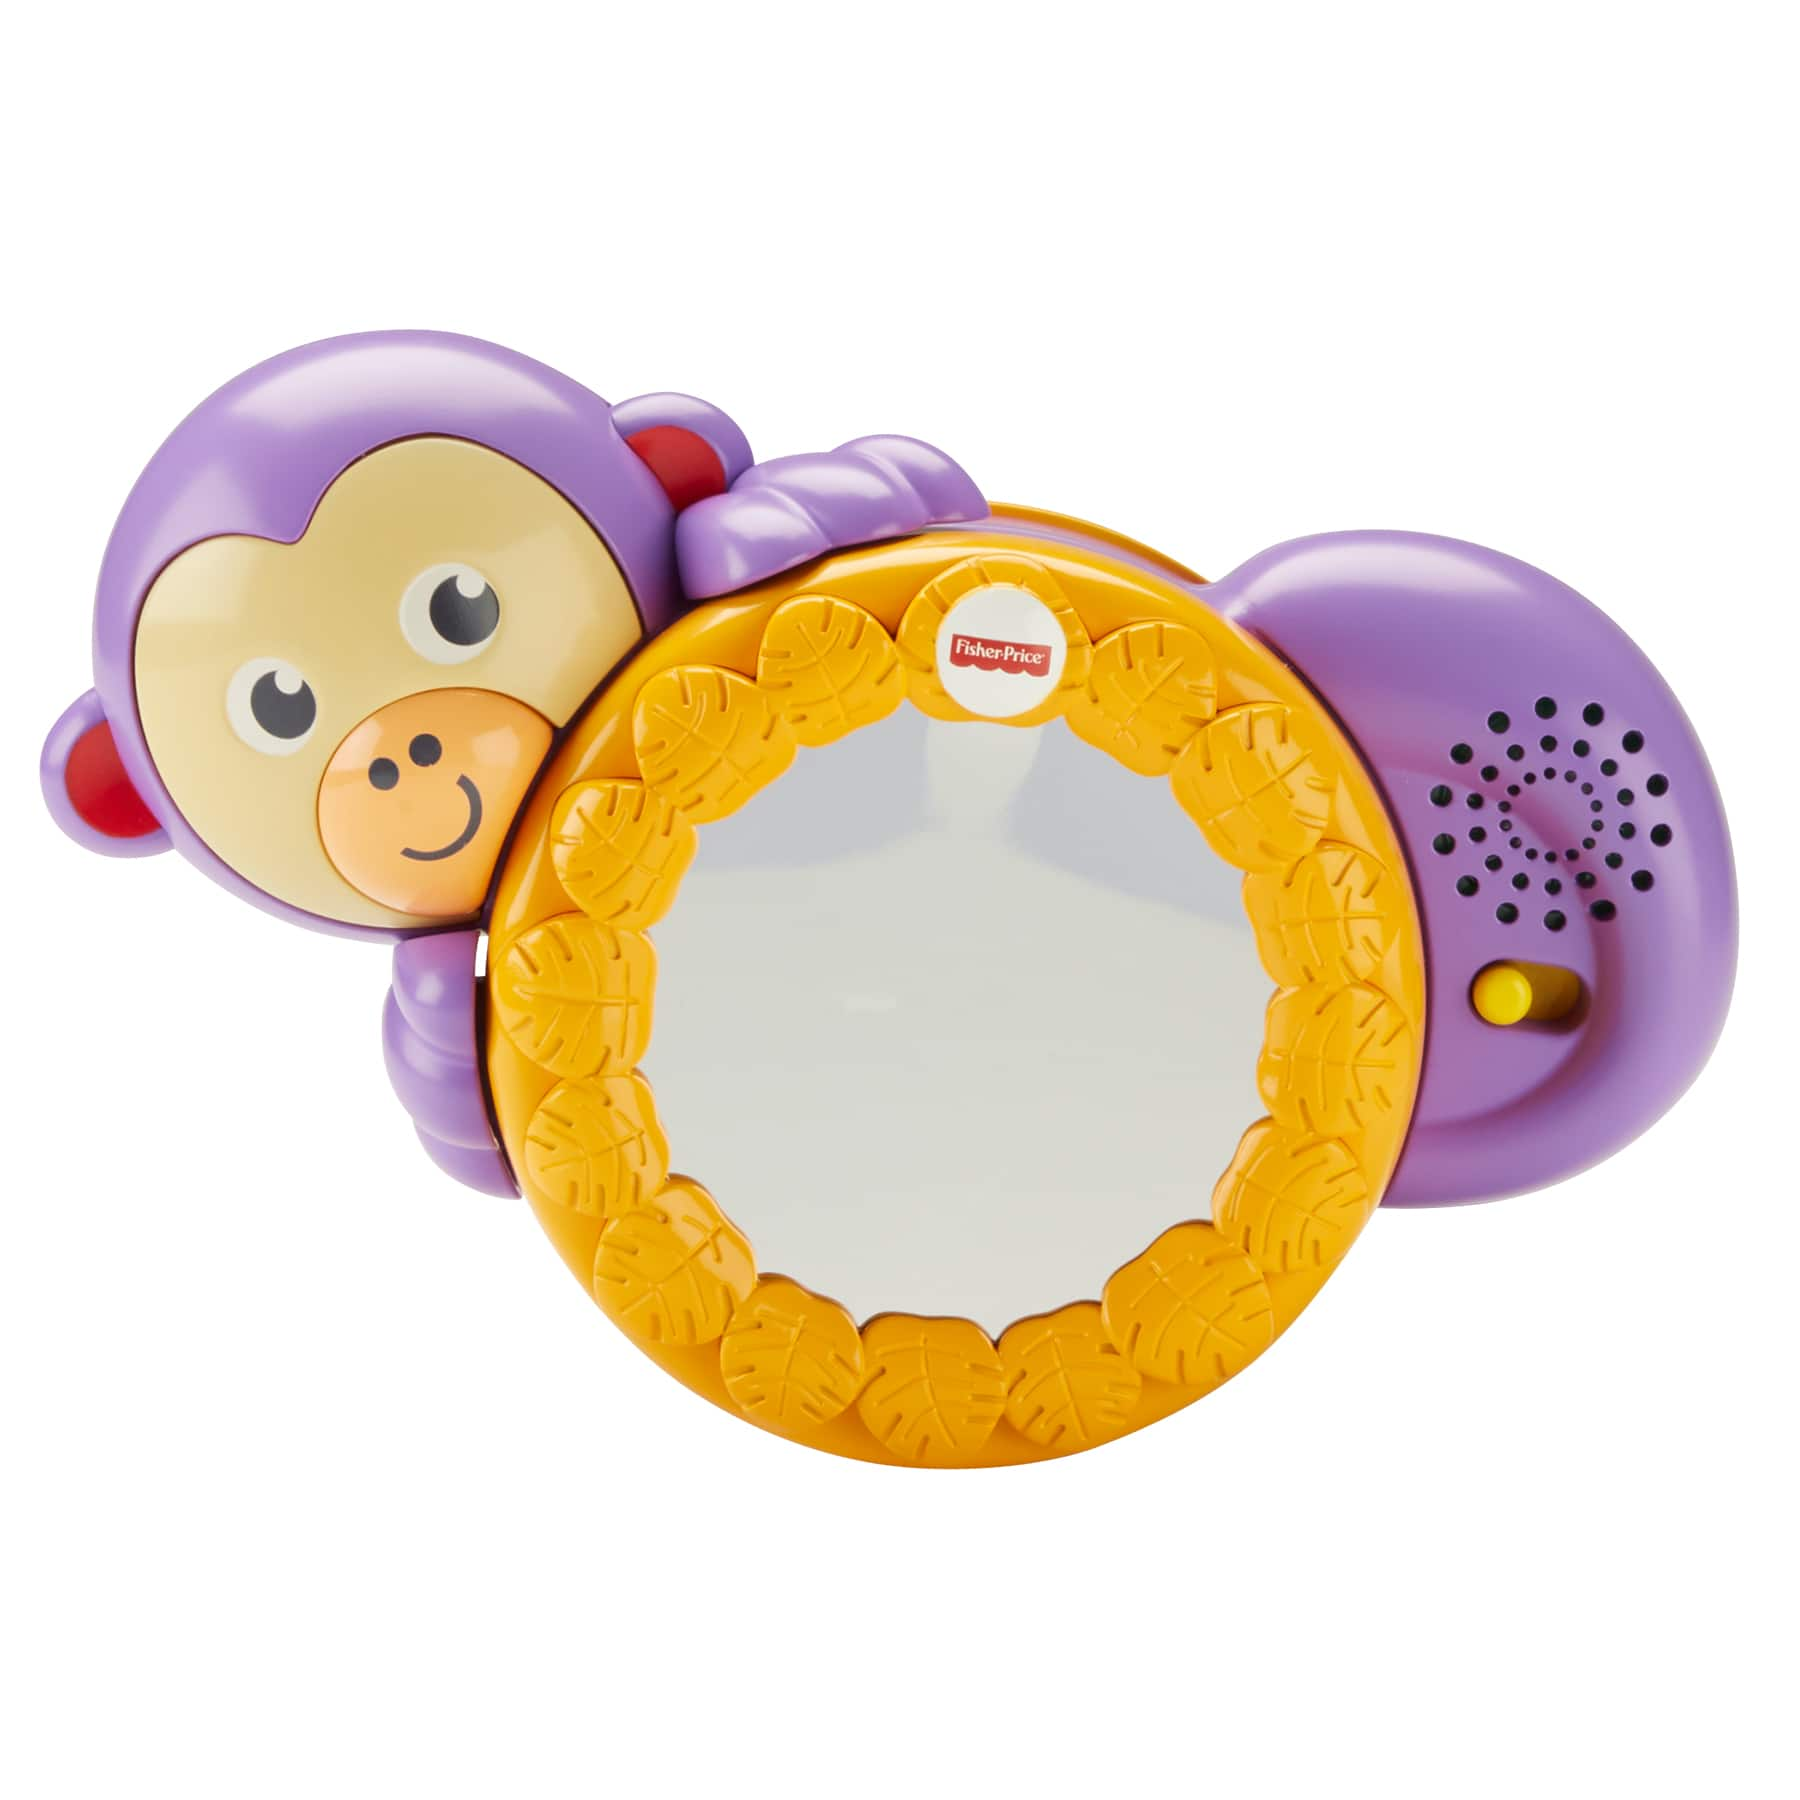 Fisher-Price 1-2-3 Crawl Along Monkey $7.50 + Free Store Pickup at Walmart or FS on $35+ or FS w/ Prime or on $25+